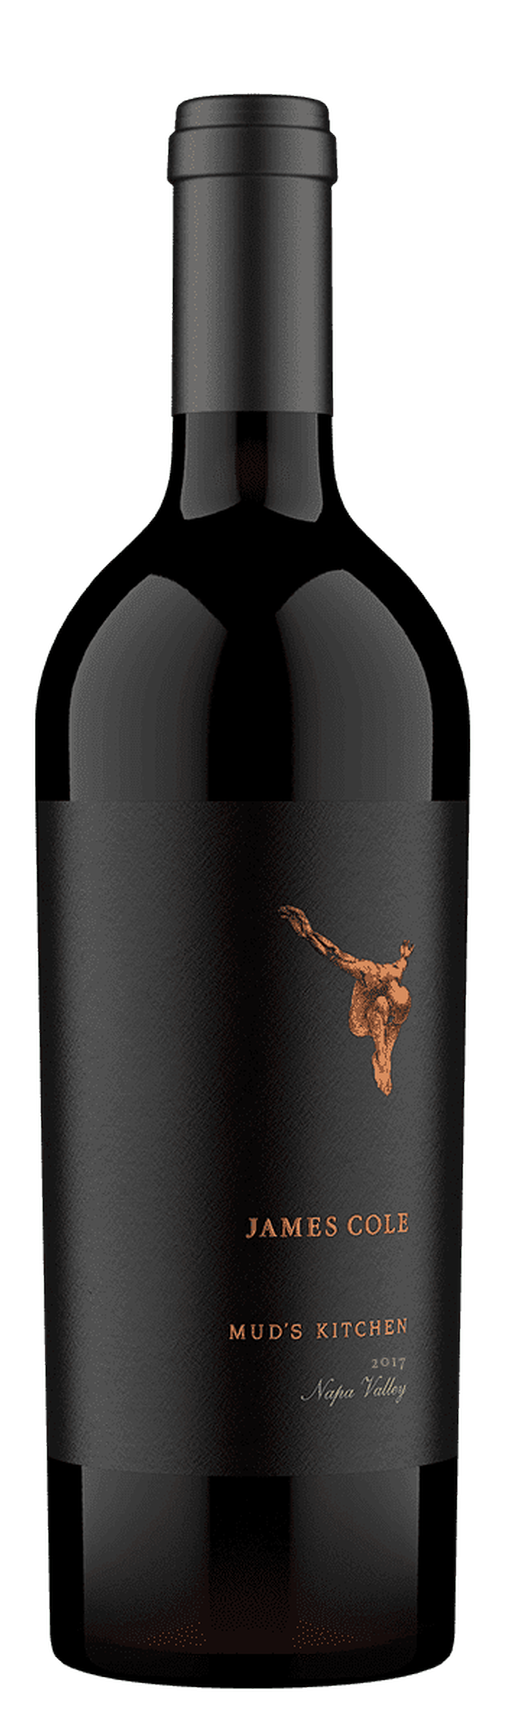 2017 Mud's Kitchen Cabernet Sauvignon